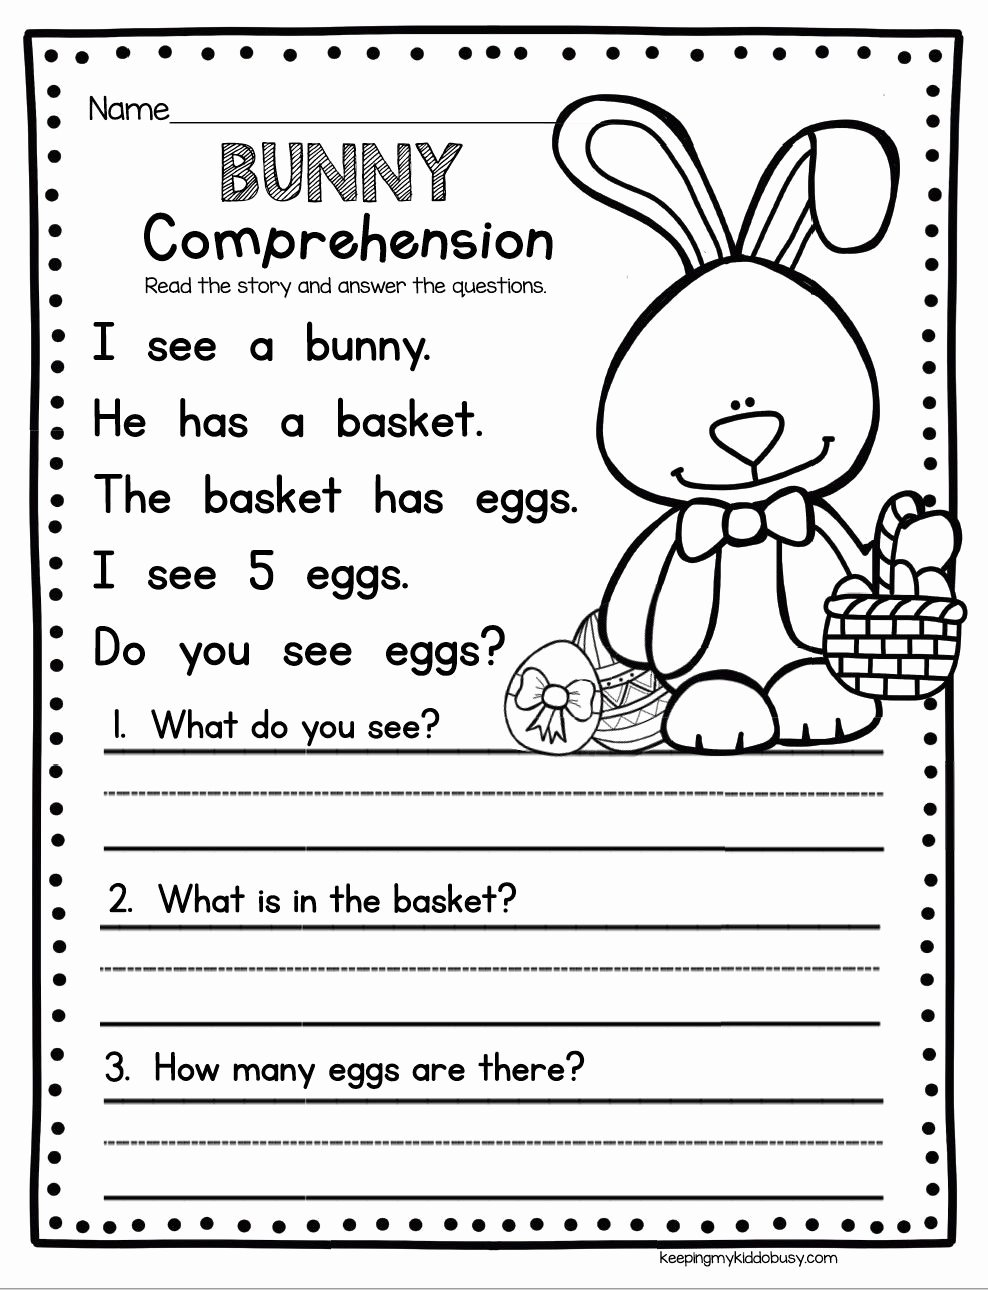 Easy Reading Worksheets for Preschoolers Lovely Worksheet Easy Science Experiments to Do at Home